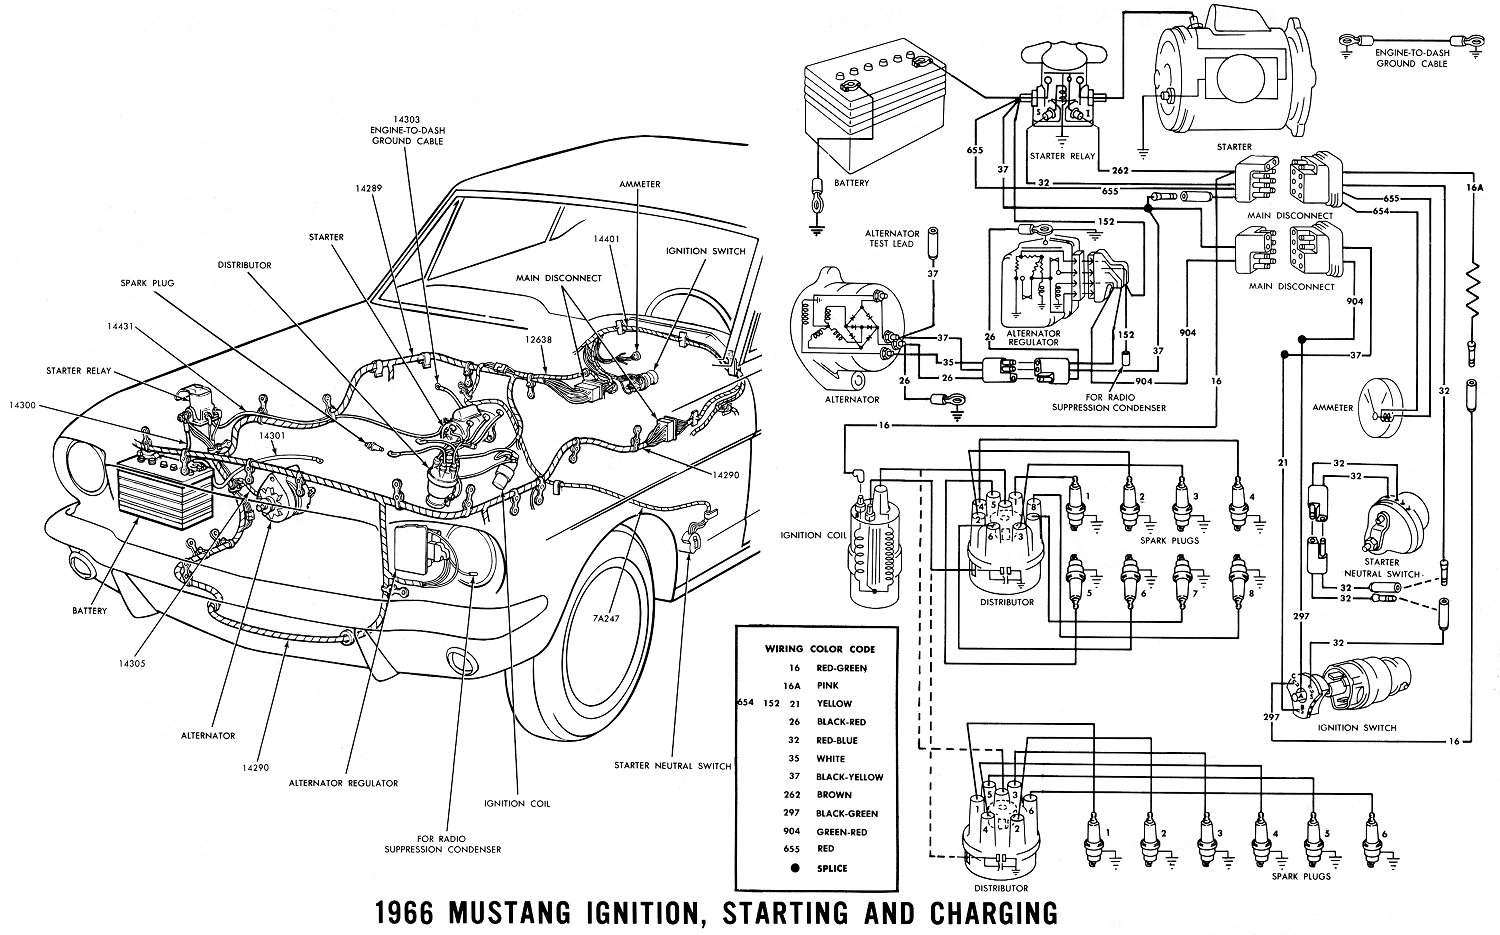 1966 Mustang Wiring Diagrams Average Joe Restoration Schematic Further How To Read Electrical Ignition Starting And Charging